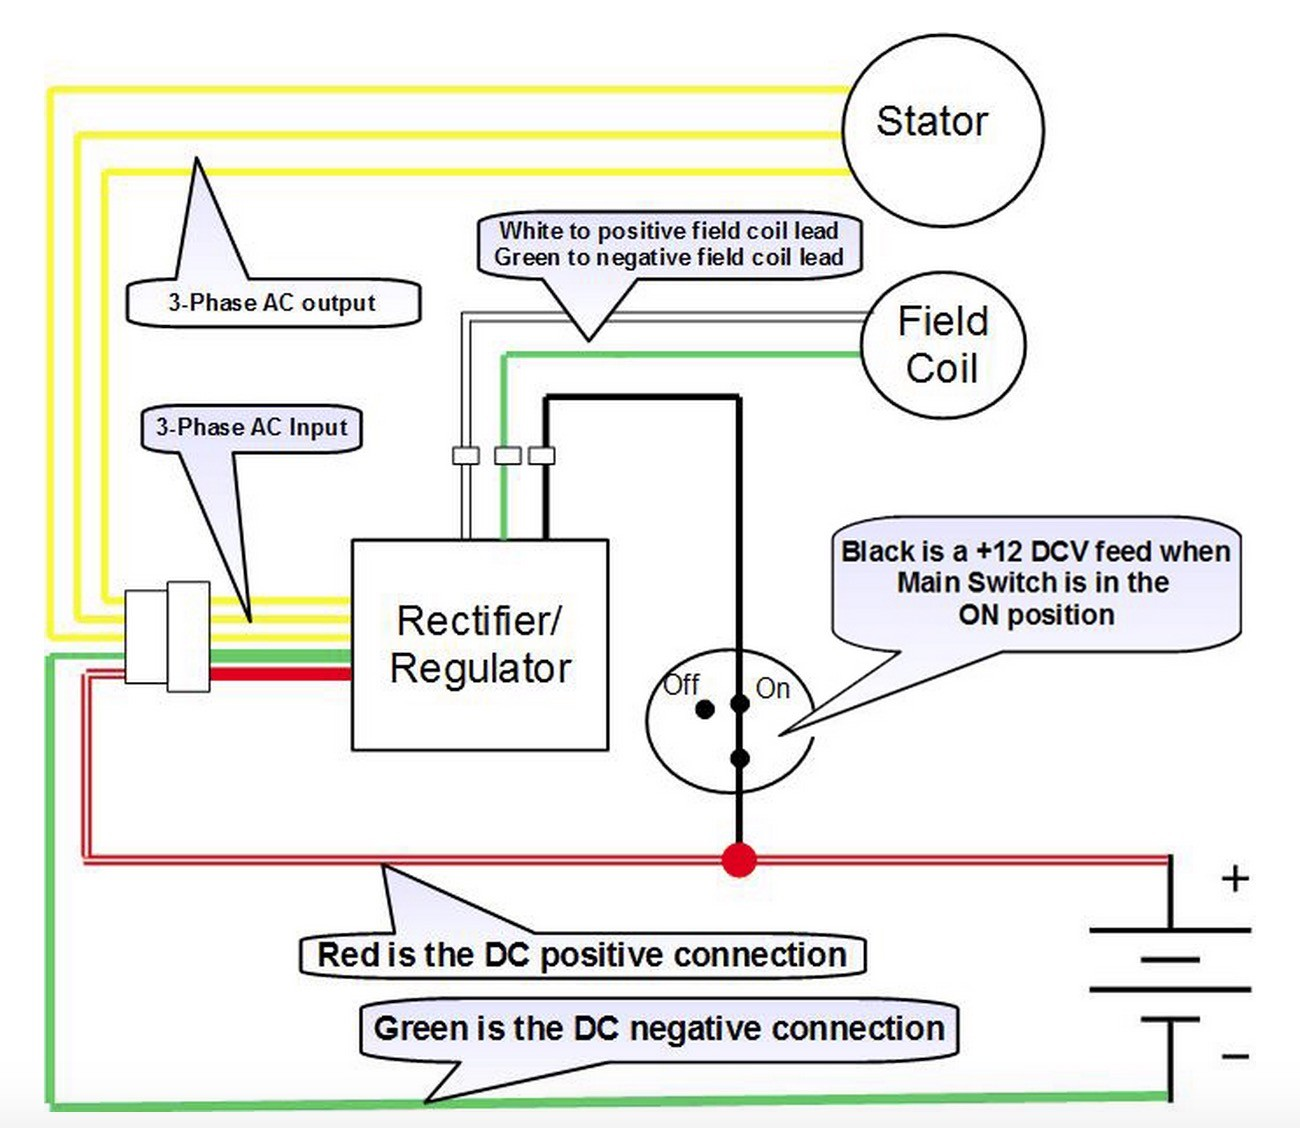 24v Rectifier Wiring Diagram Schematic Starter Voltage Regulator 1993 Dodge Pick Up And Diagrams 38v